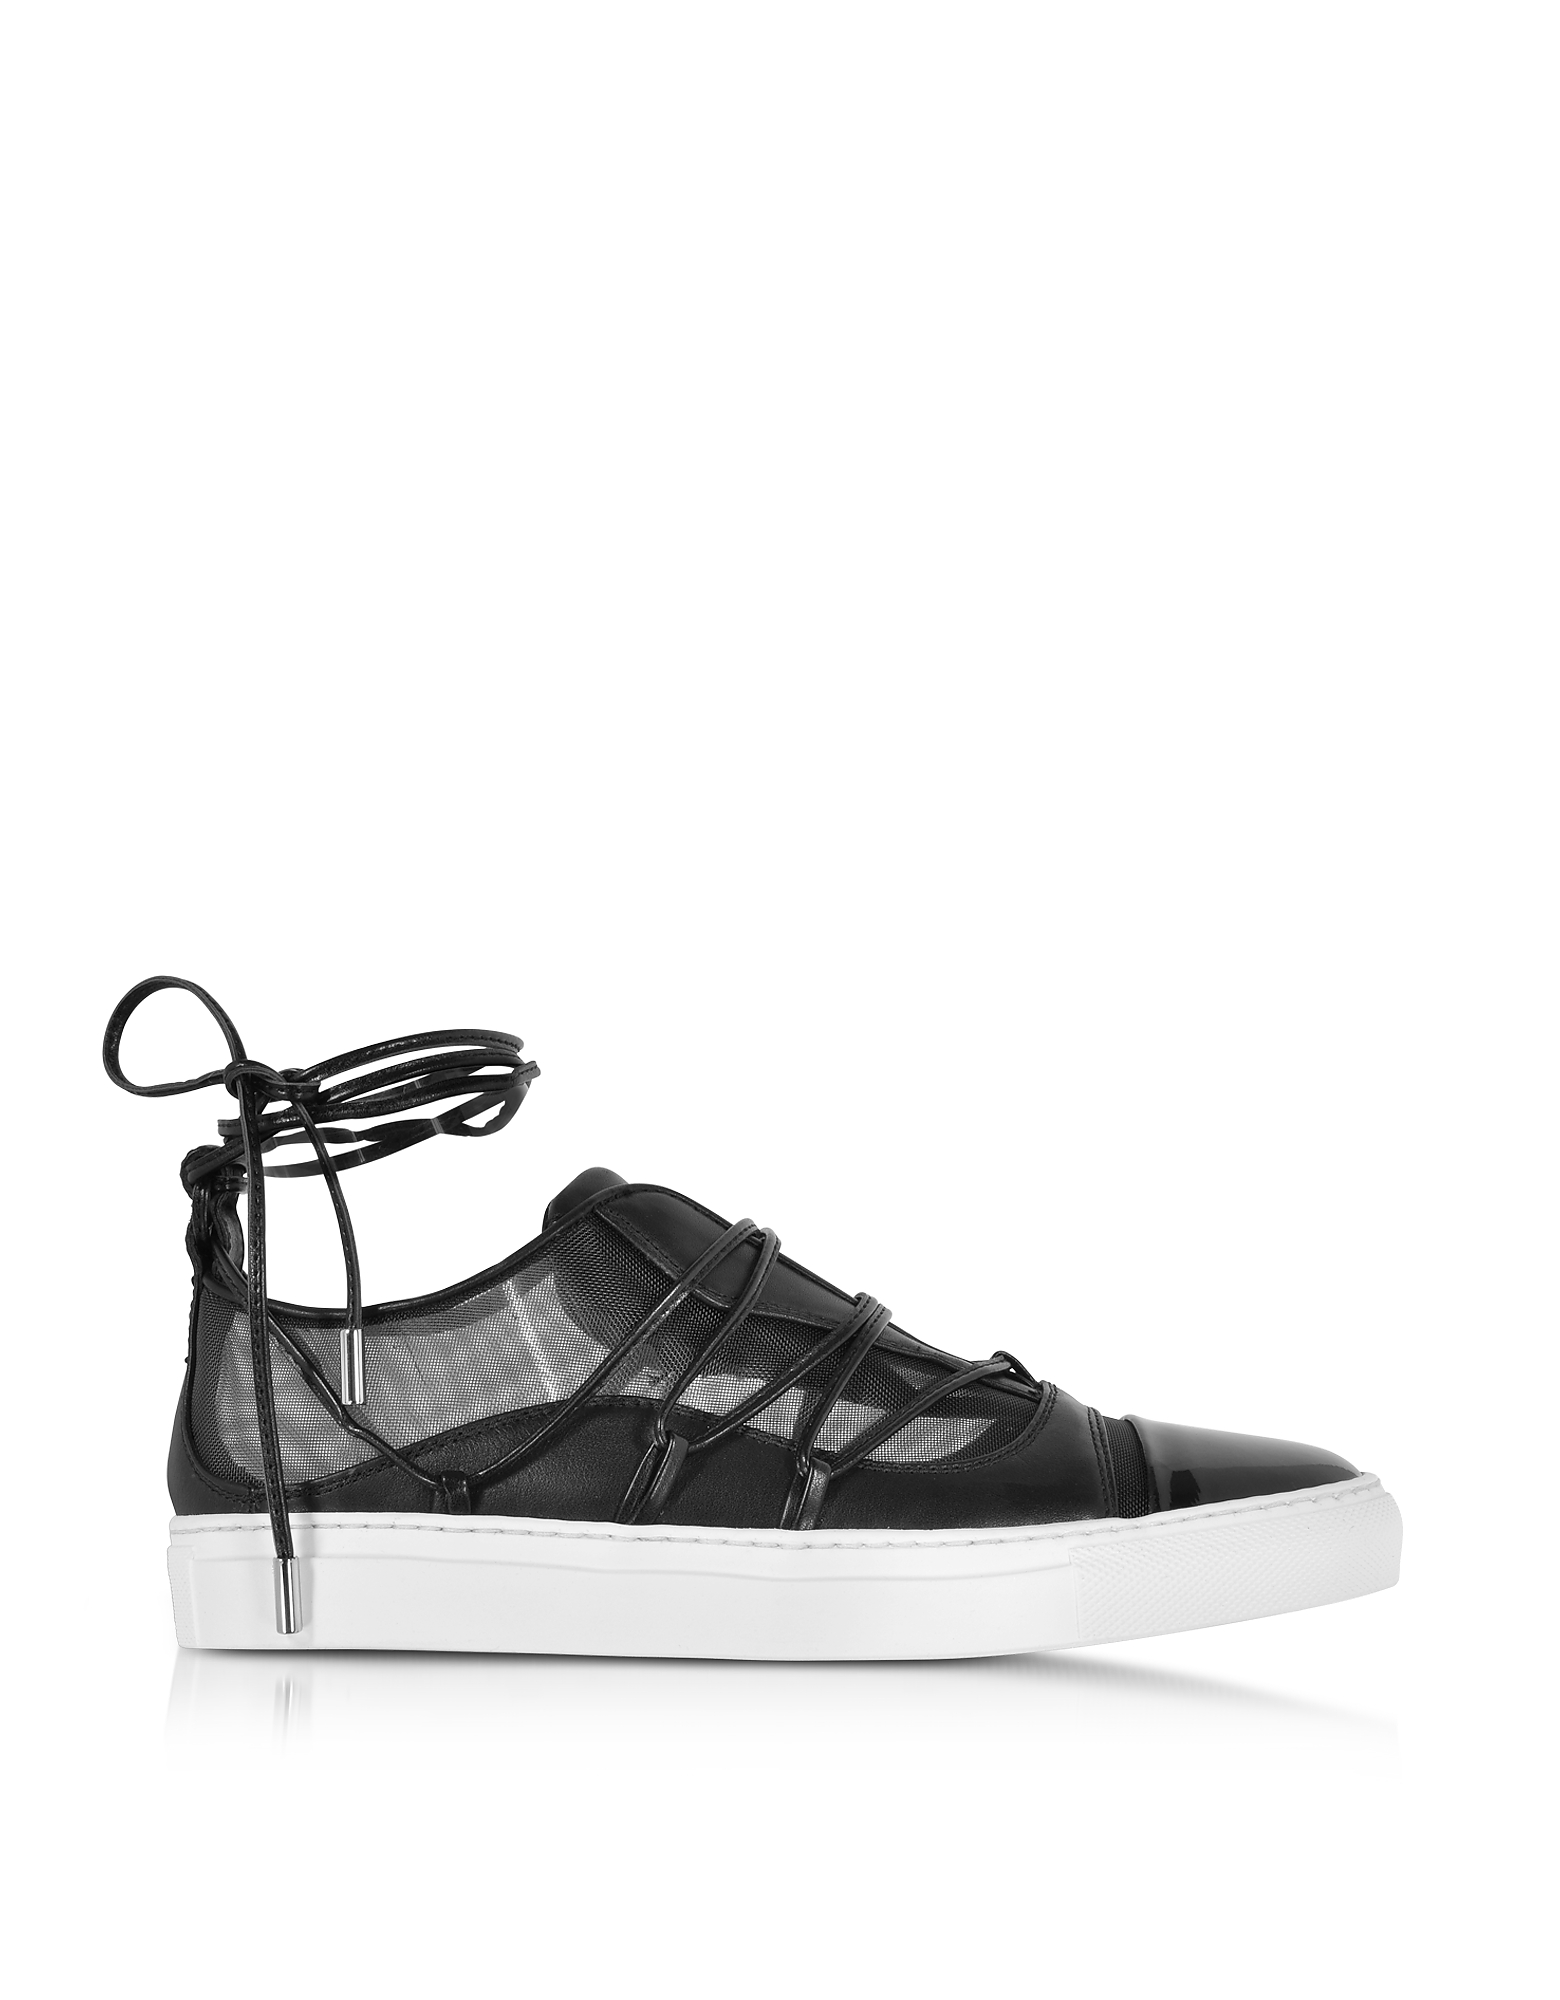 DSquared2 Shoes, Black Mesh and Leather Slip on Riri Sneakers